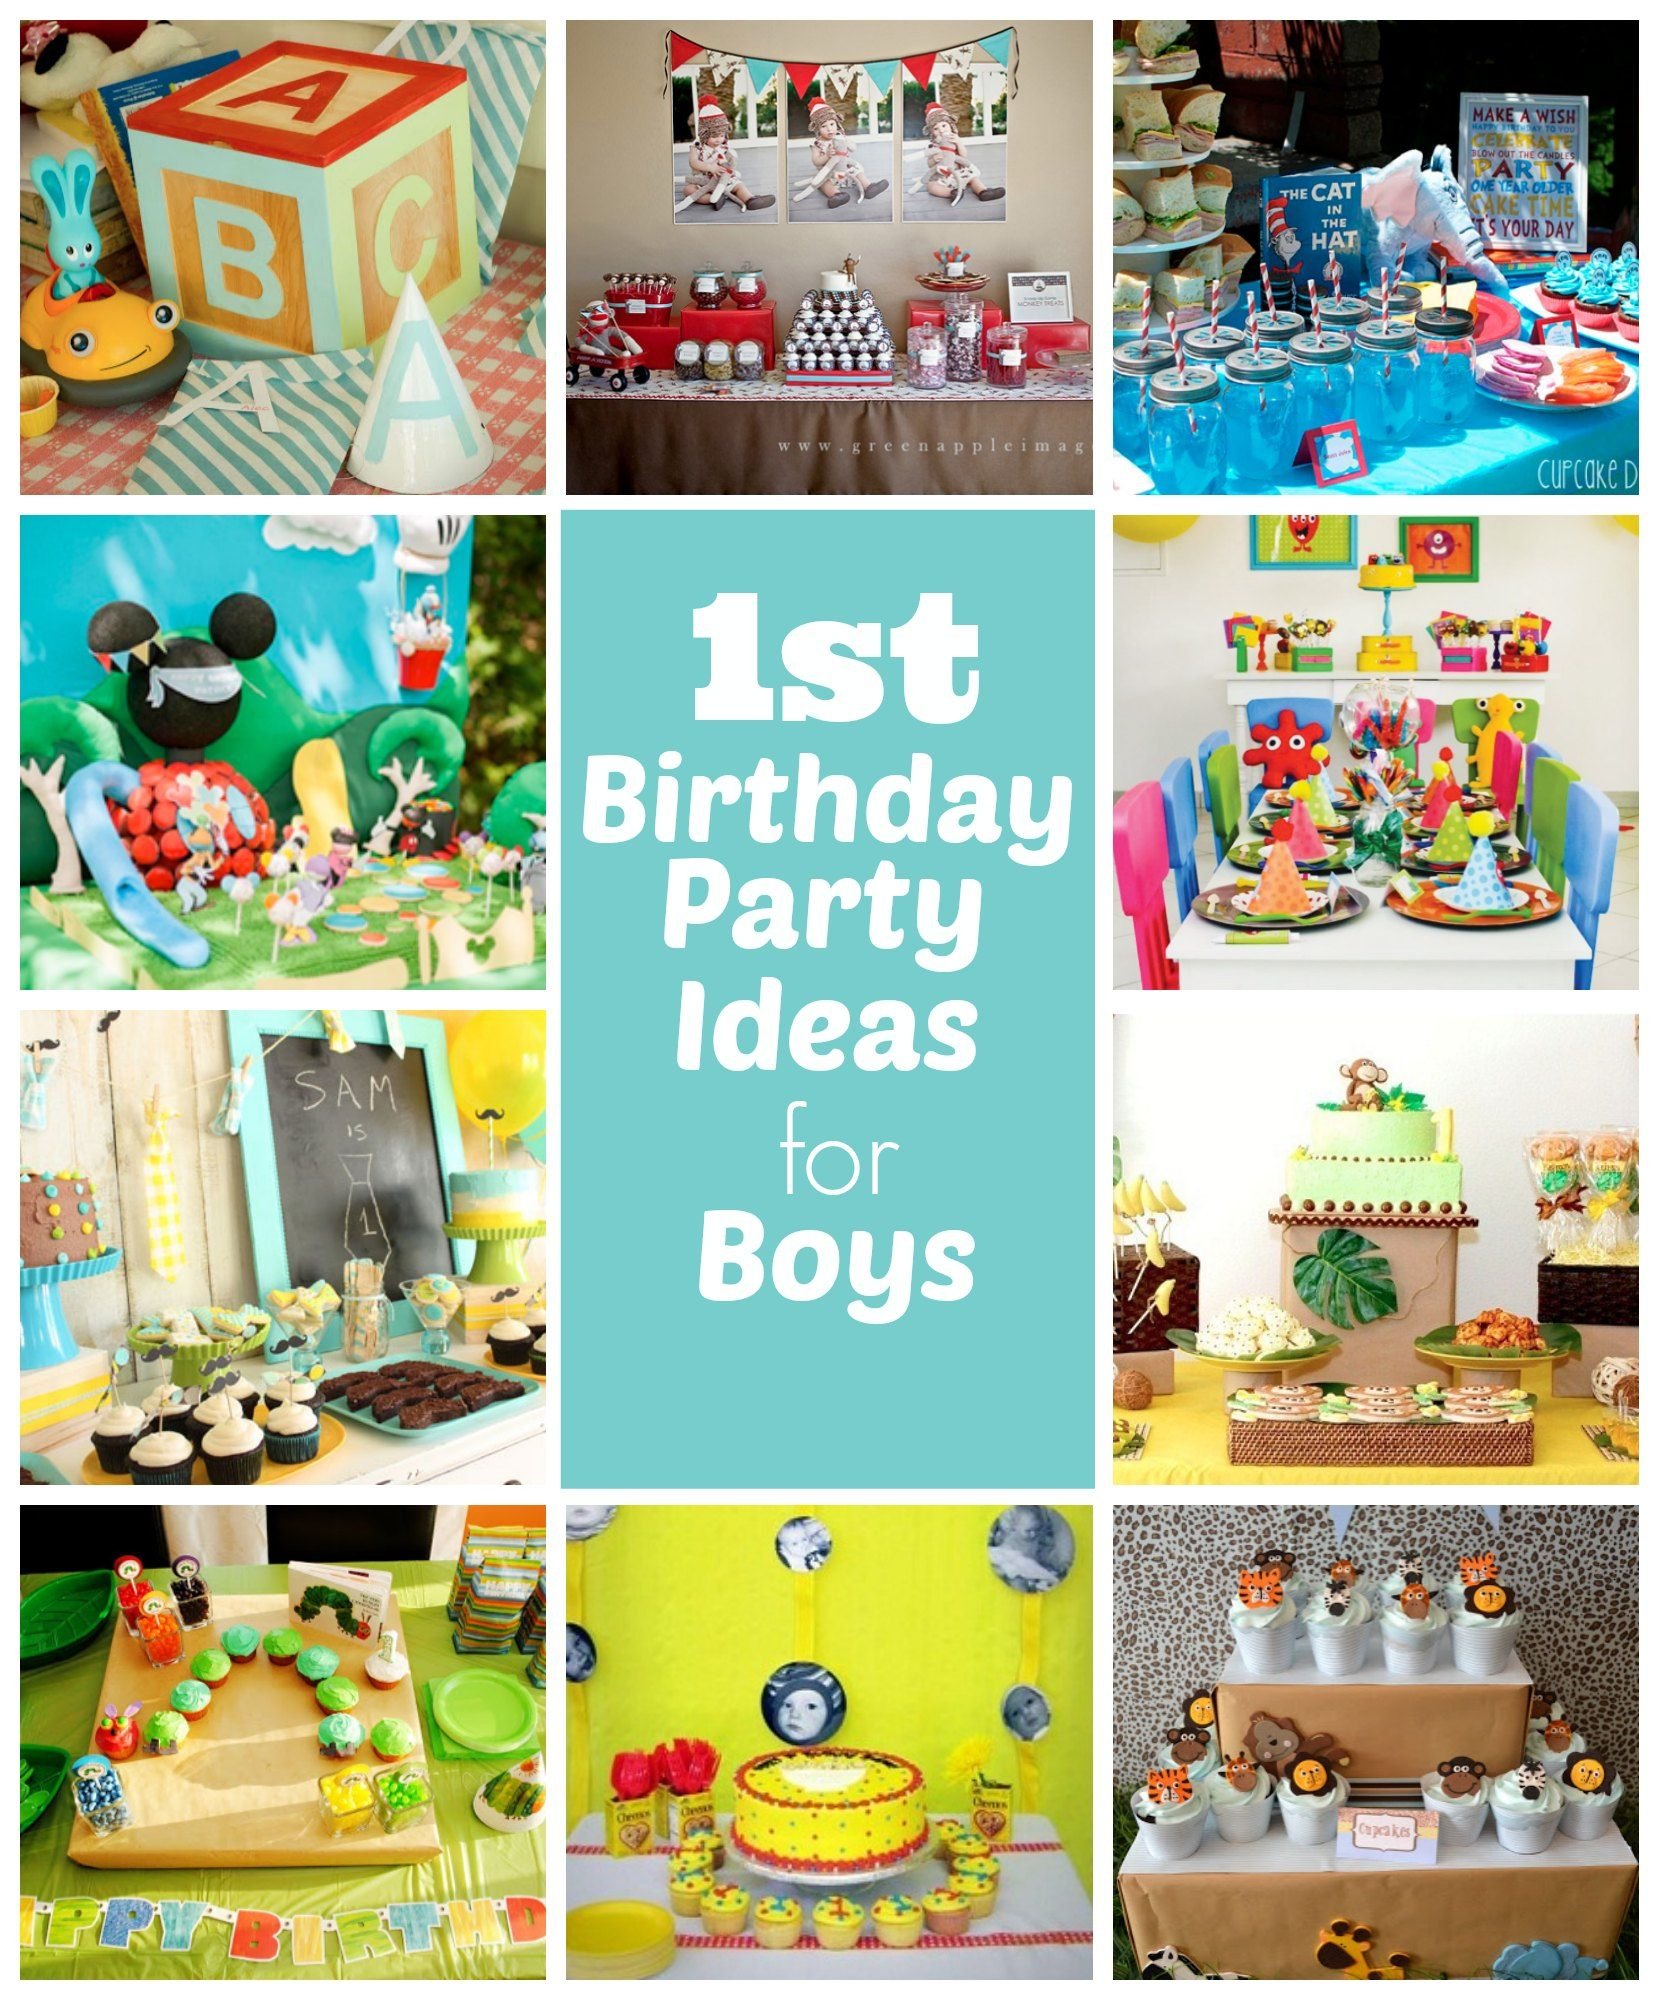 Pin by Right Start on Birthday Parties Pinterest Safari theme